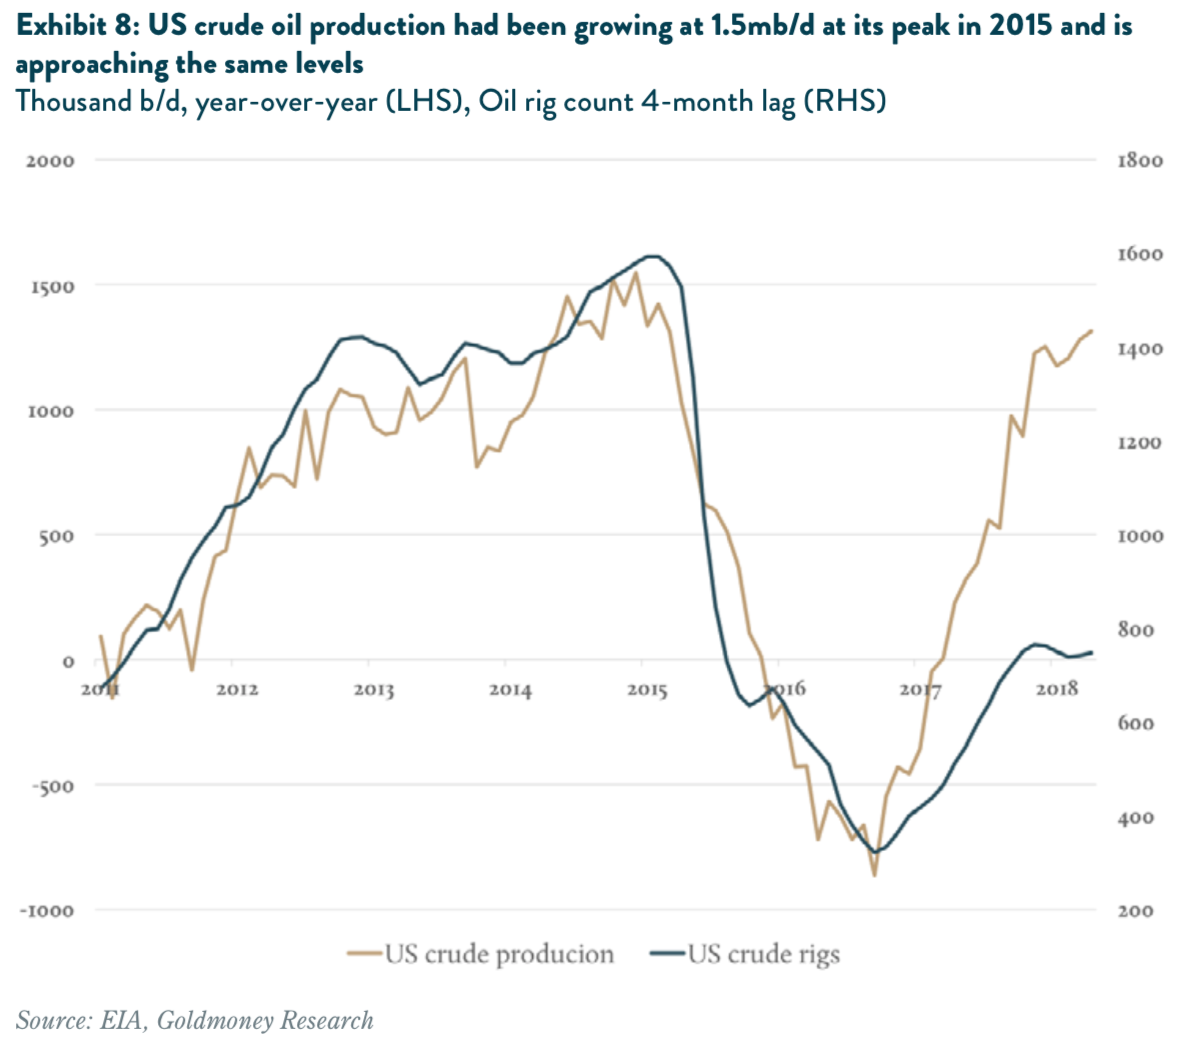 US crude oil production had been growing